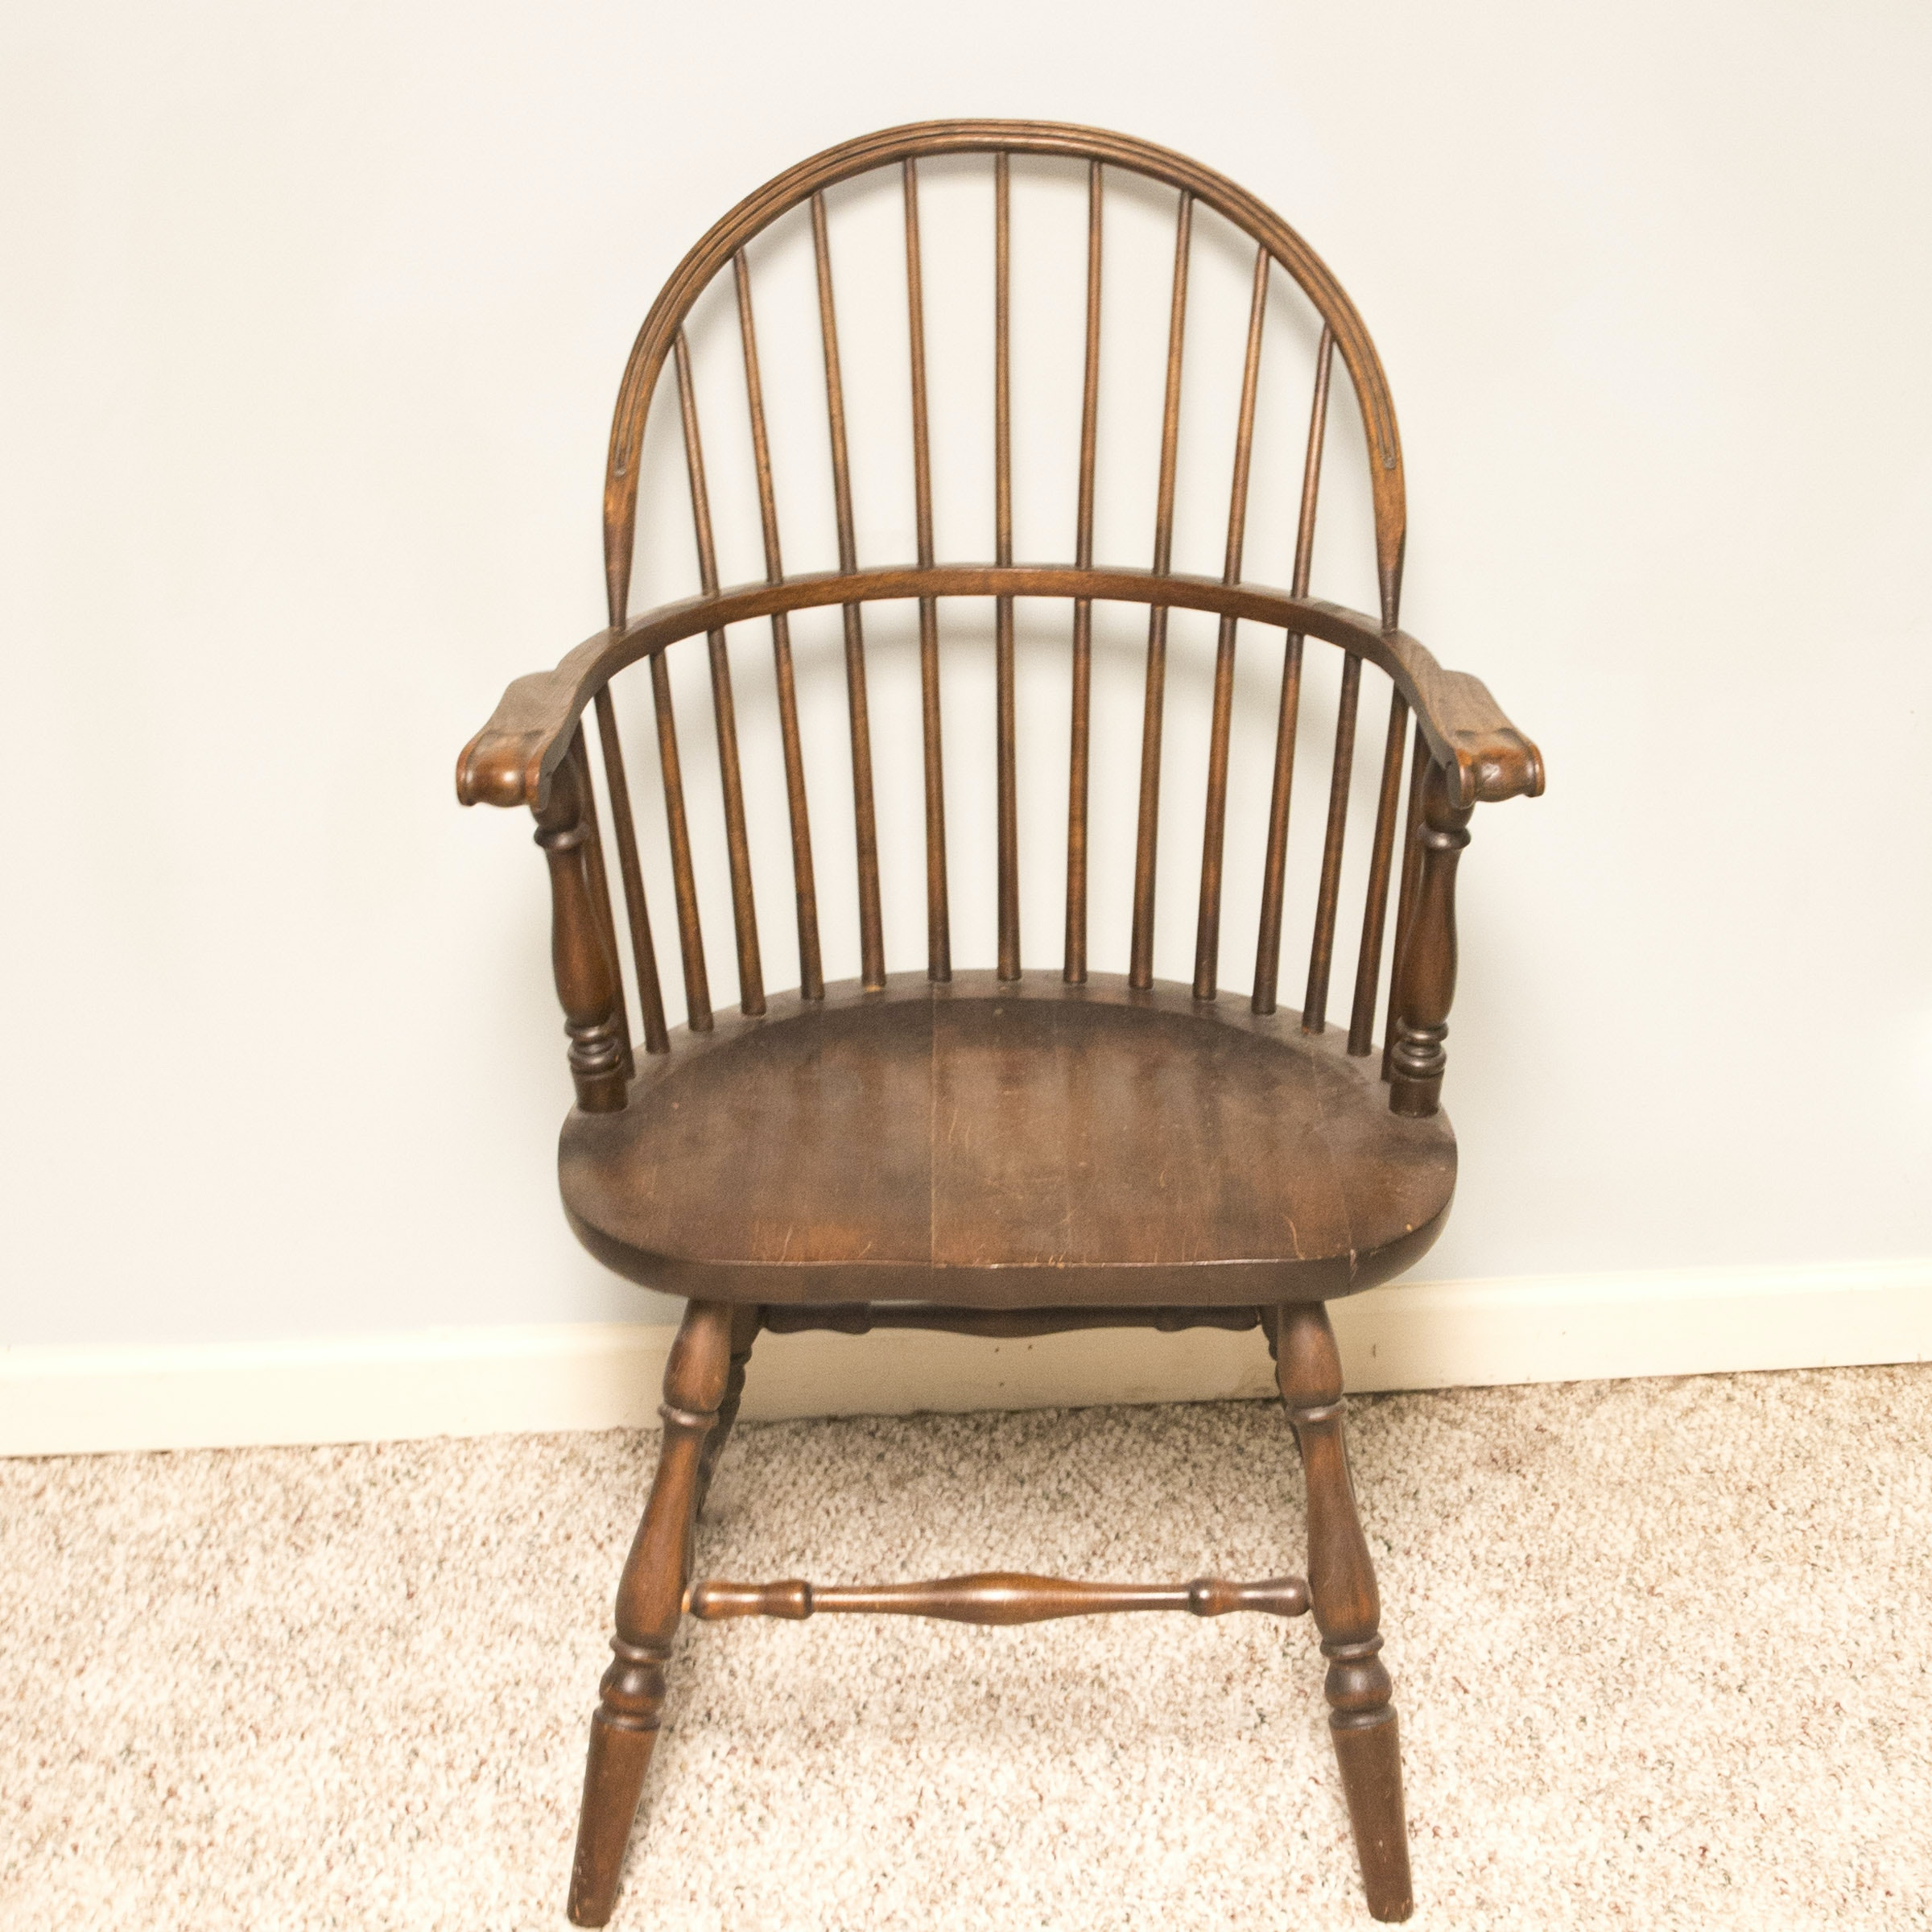 Vintage Windsor Style Sack-Back Armchair by Cochran Chair Company